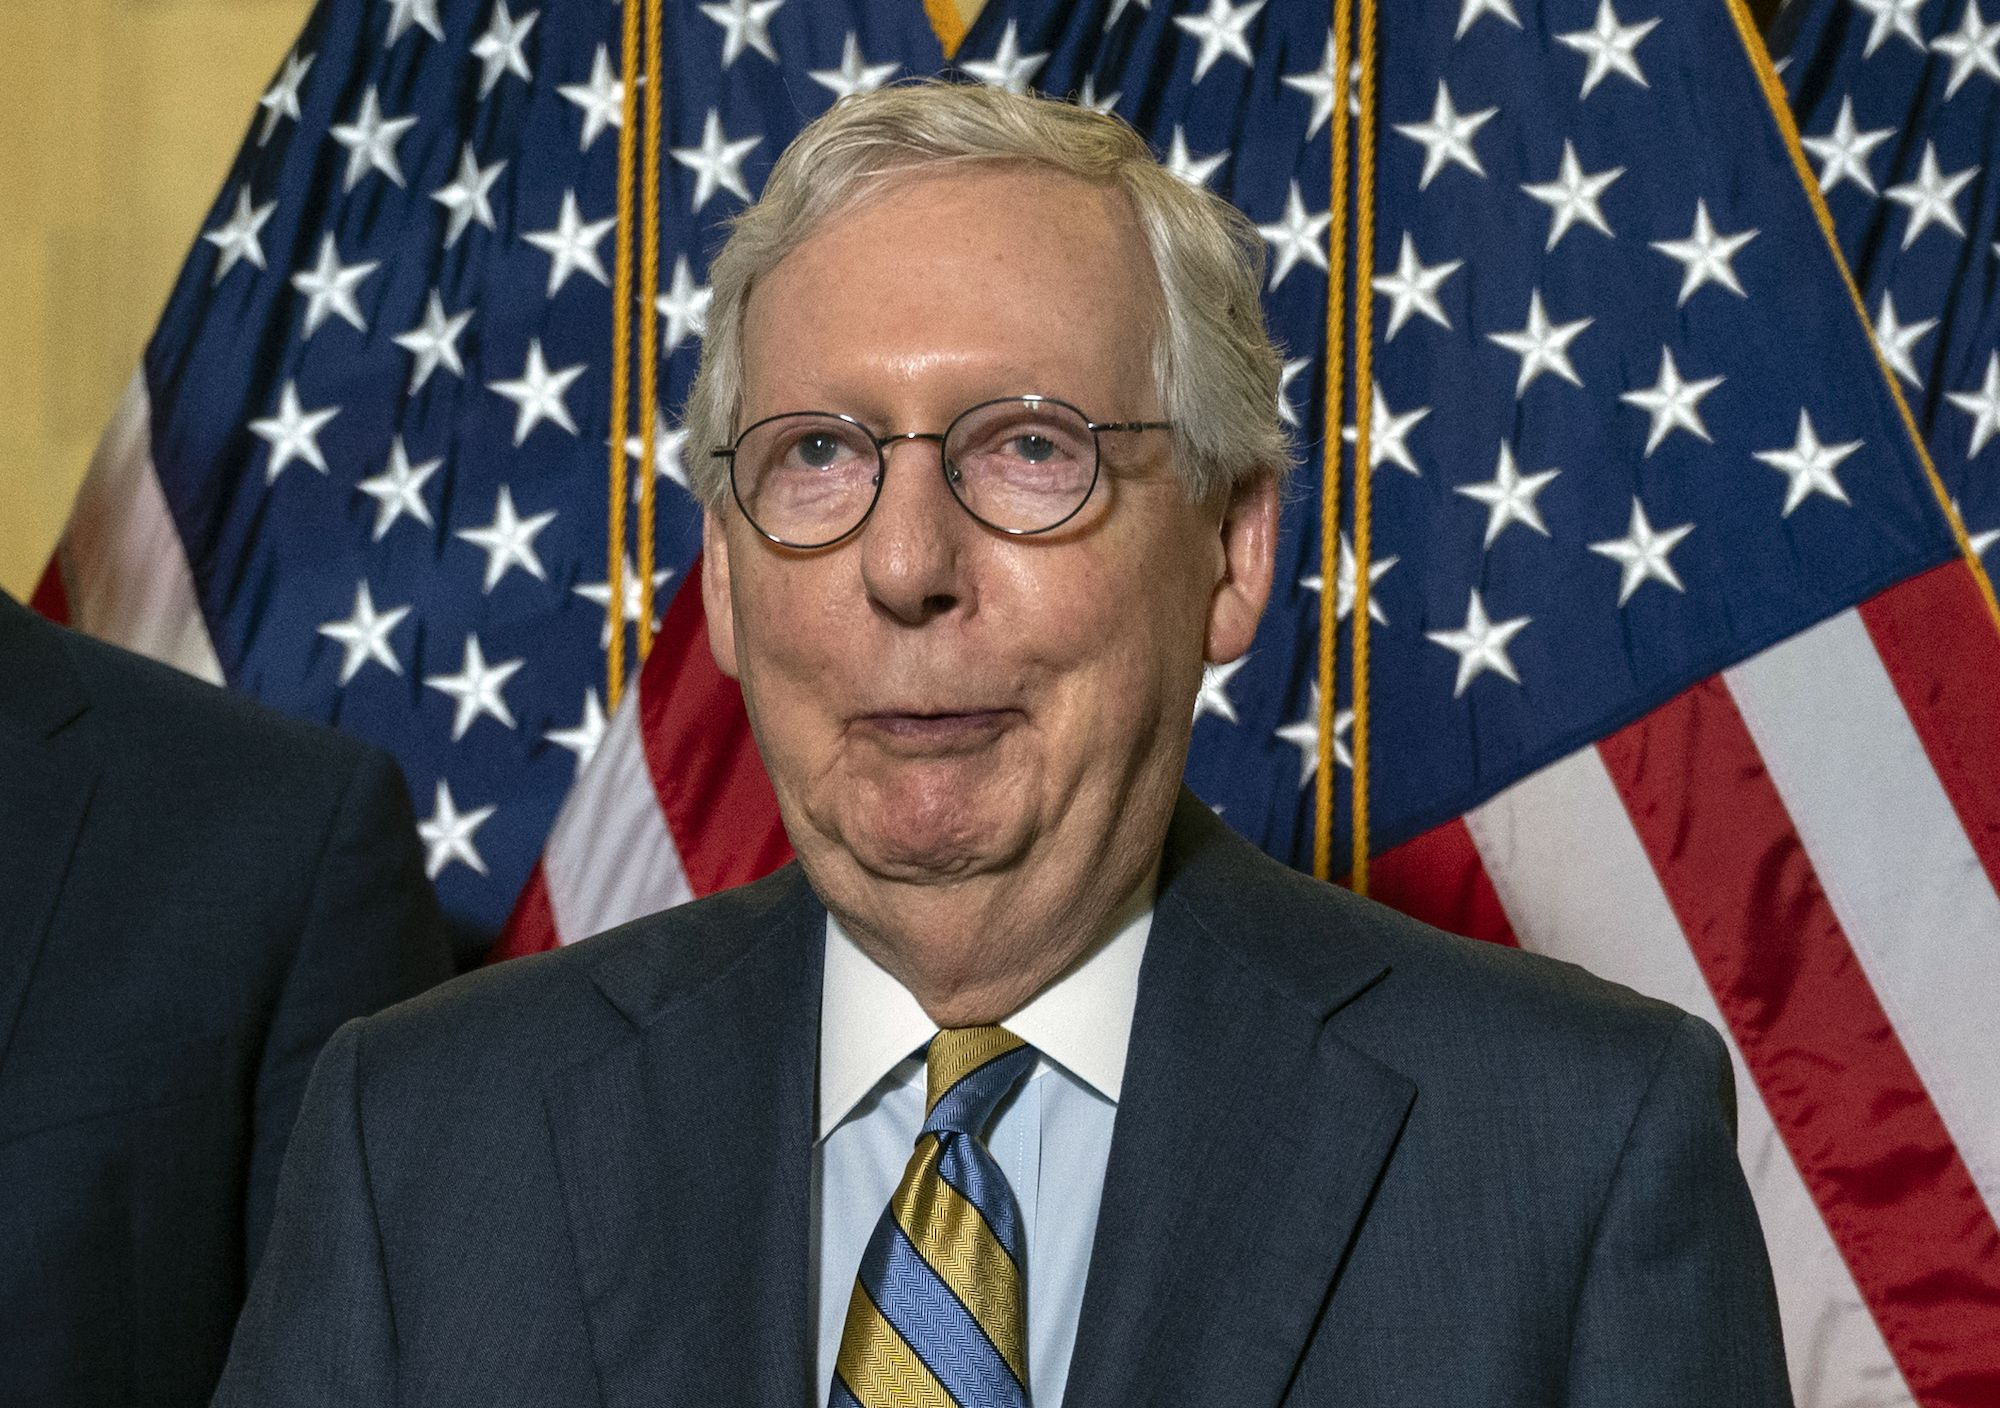 Mitch McConnell Made Full Use of the Senate's Customary Hour of Mischief